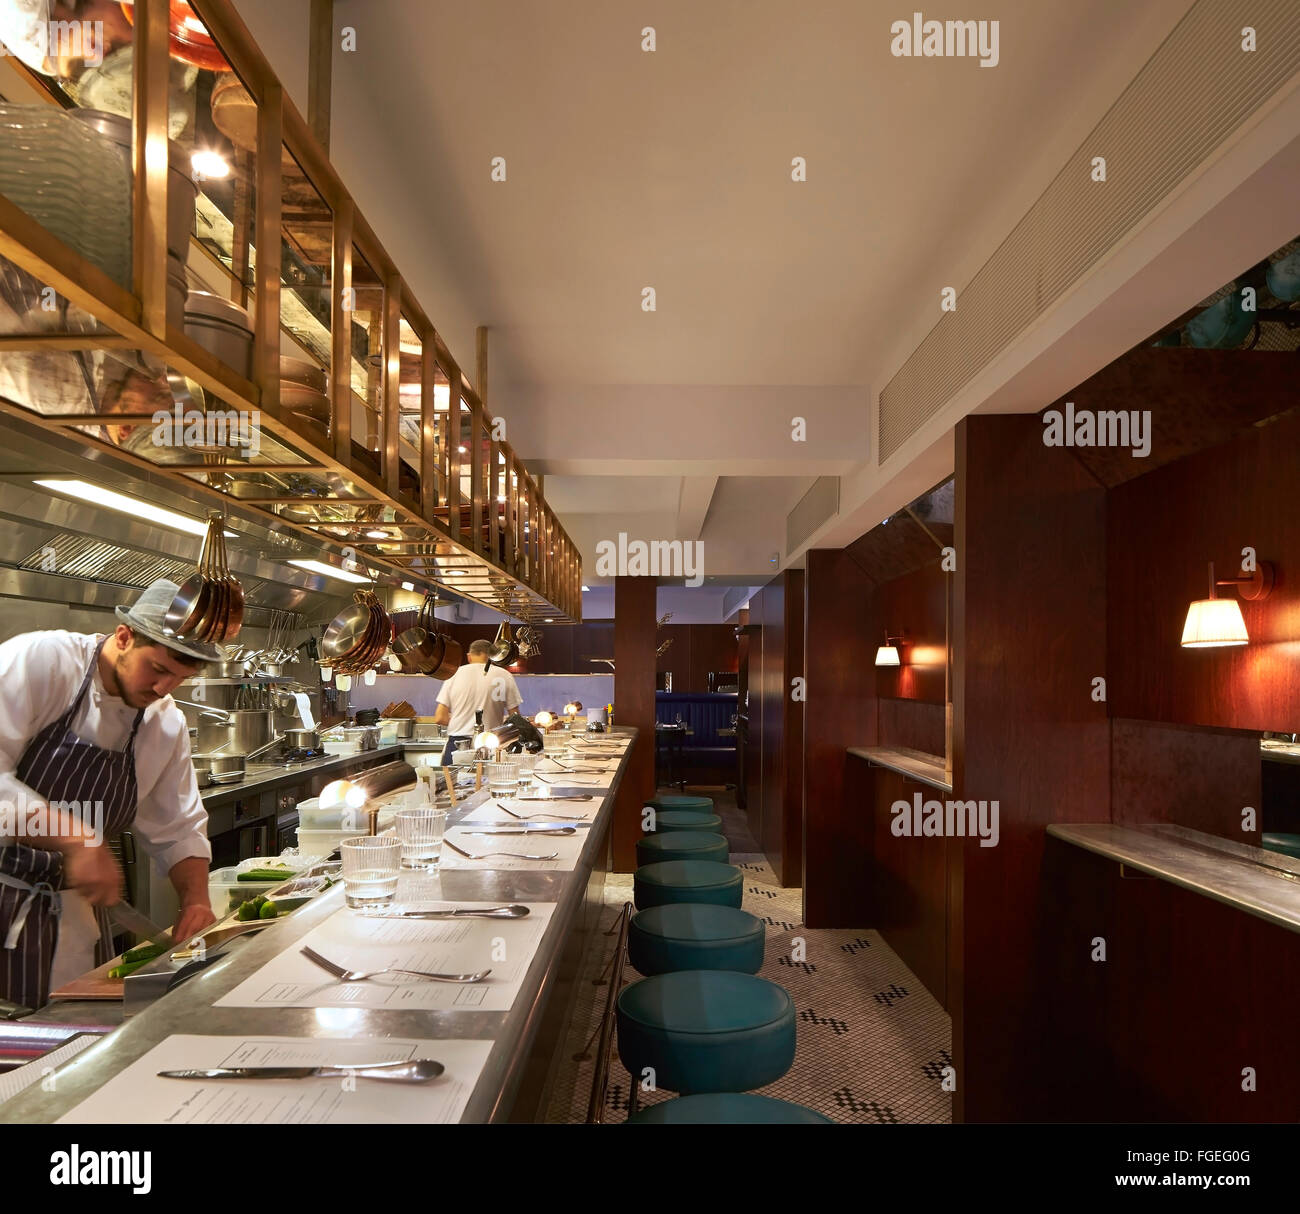 Open Kitchen With Bar Counter Seating And Chefs At Work. The Palomar  Restaurant, London, United Kingdom. Architect: Gundry U0026 Duc